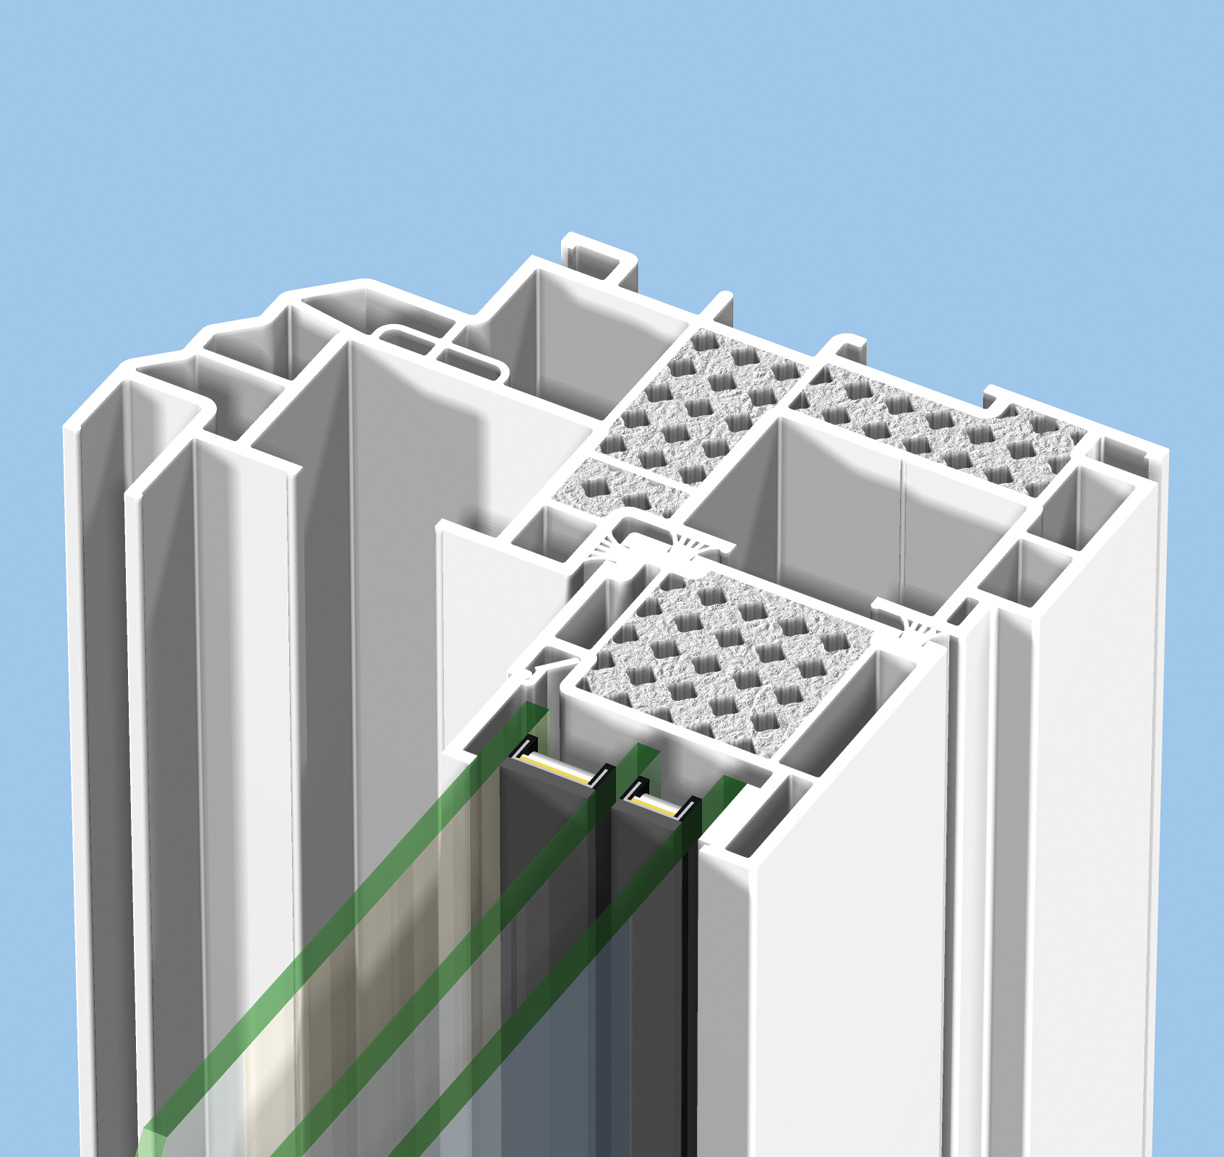 Cellular pvc window construction and technology - Additional Images Energycore Window System